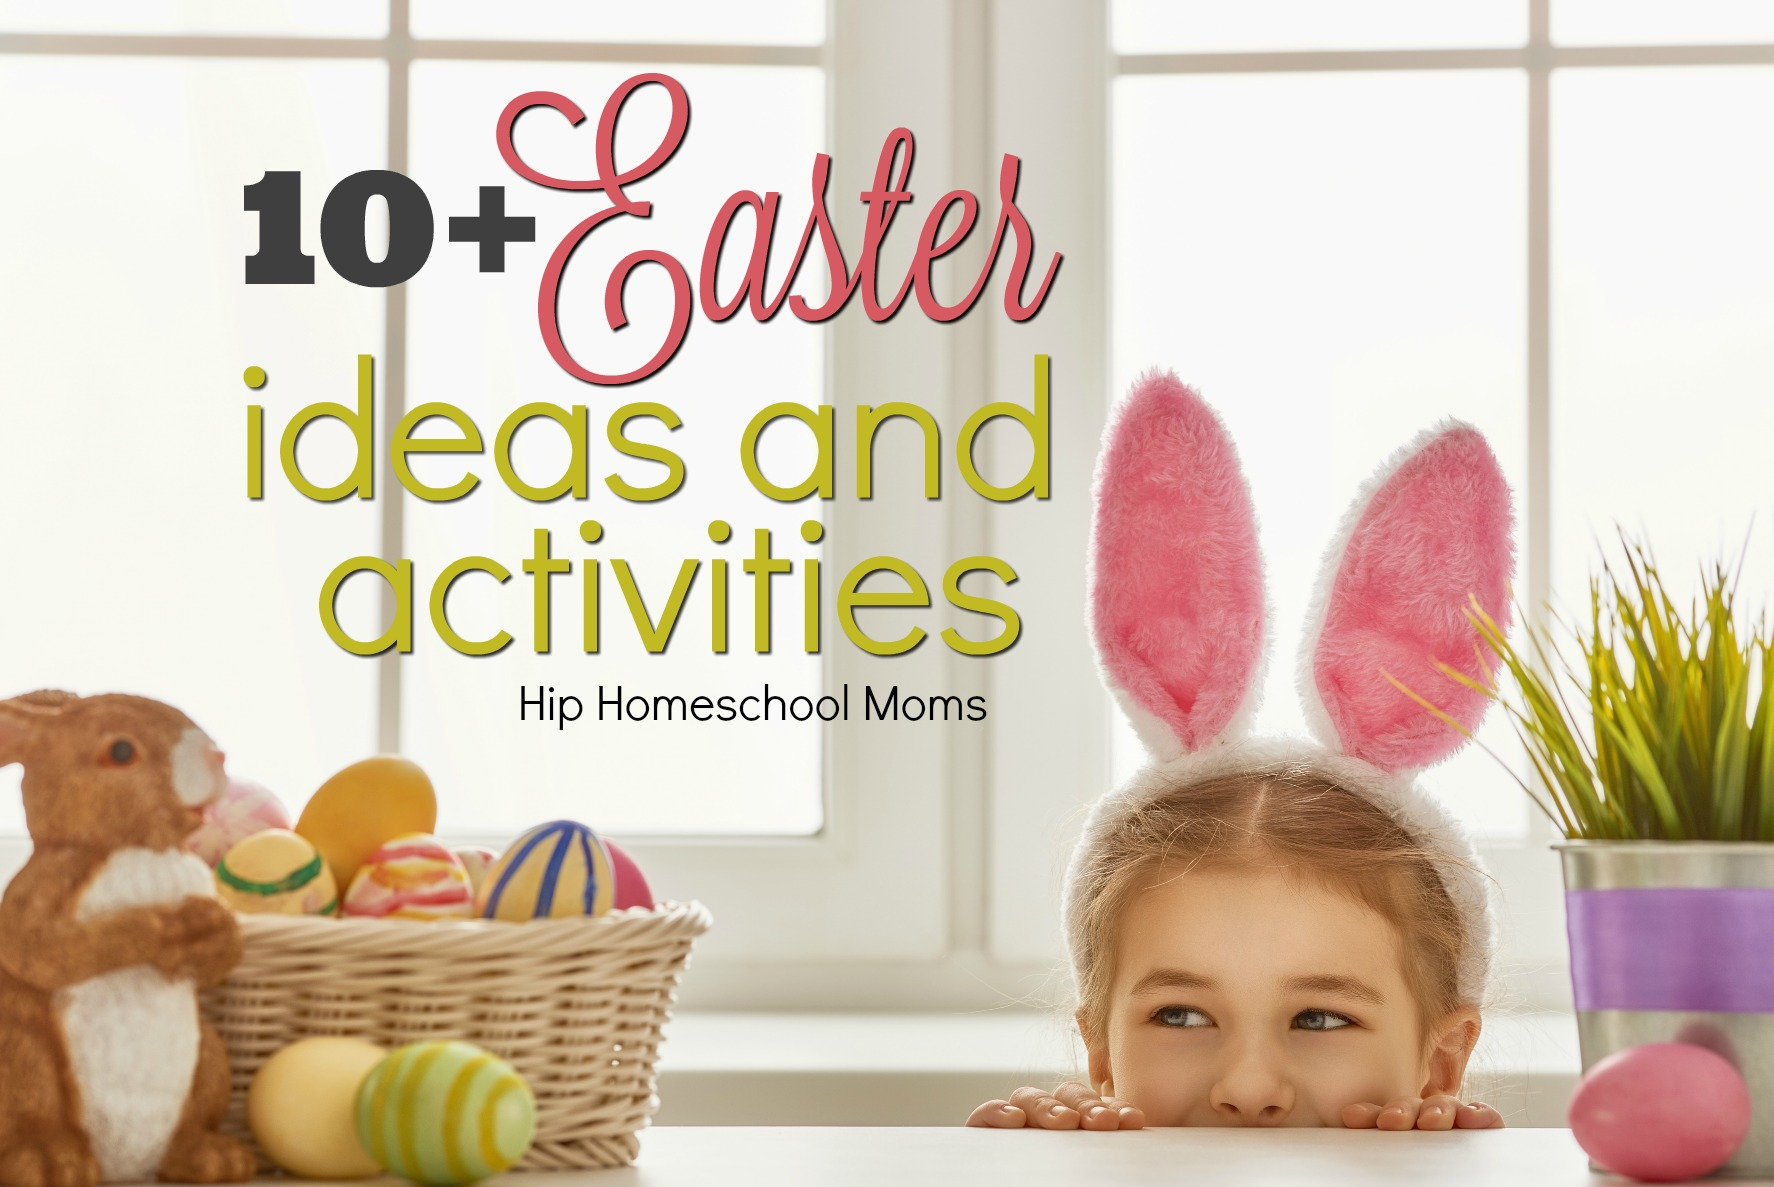 10+ Easter Ideas and Activities